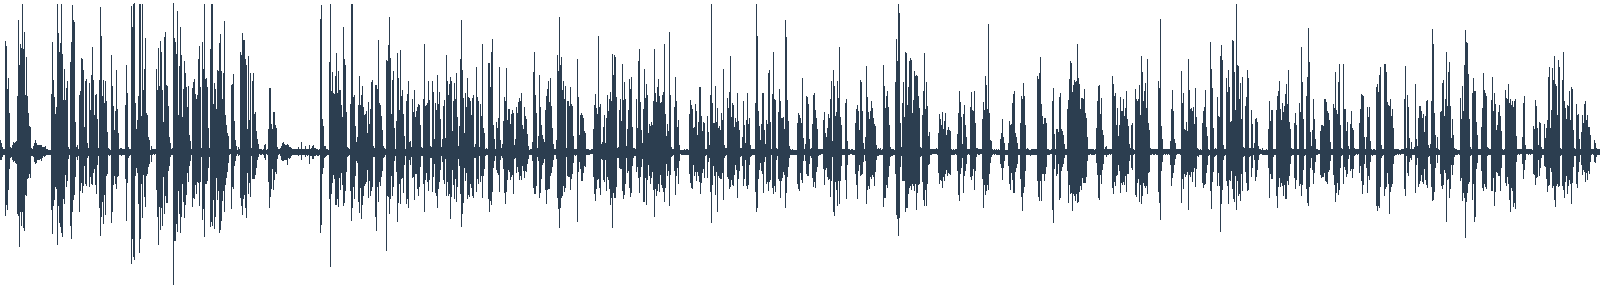 Sv. Ondreja waveform